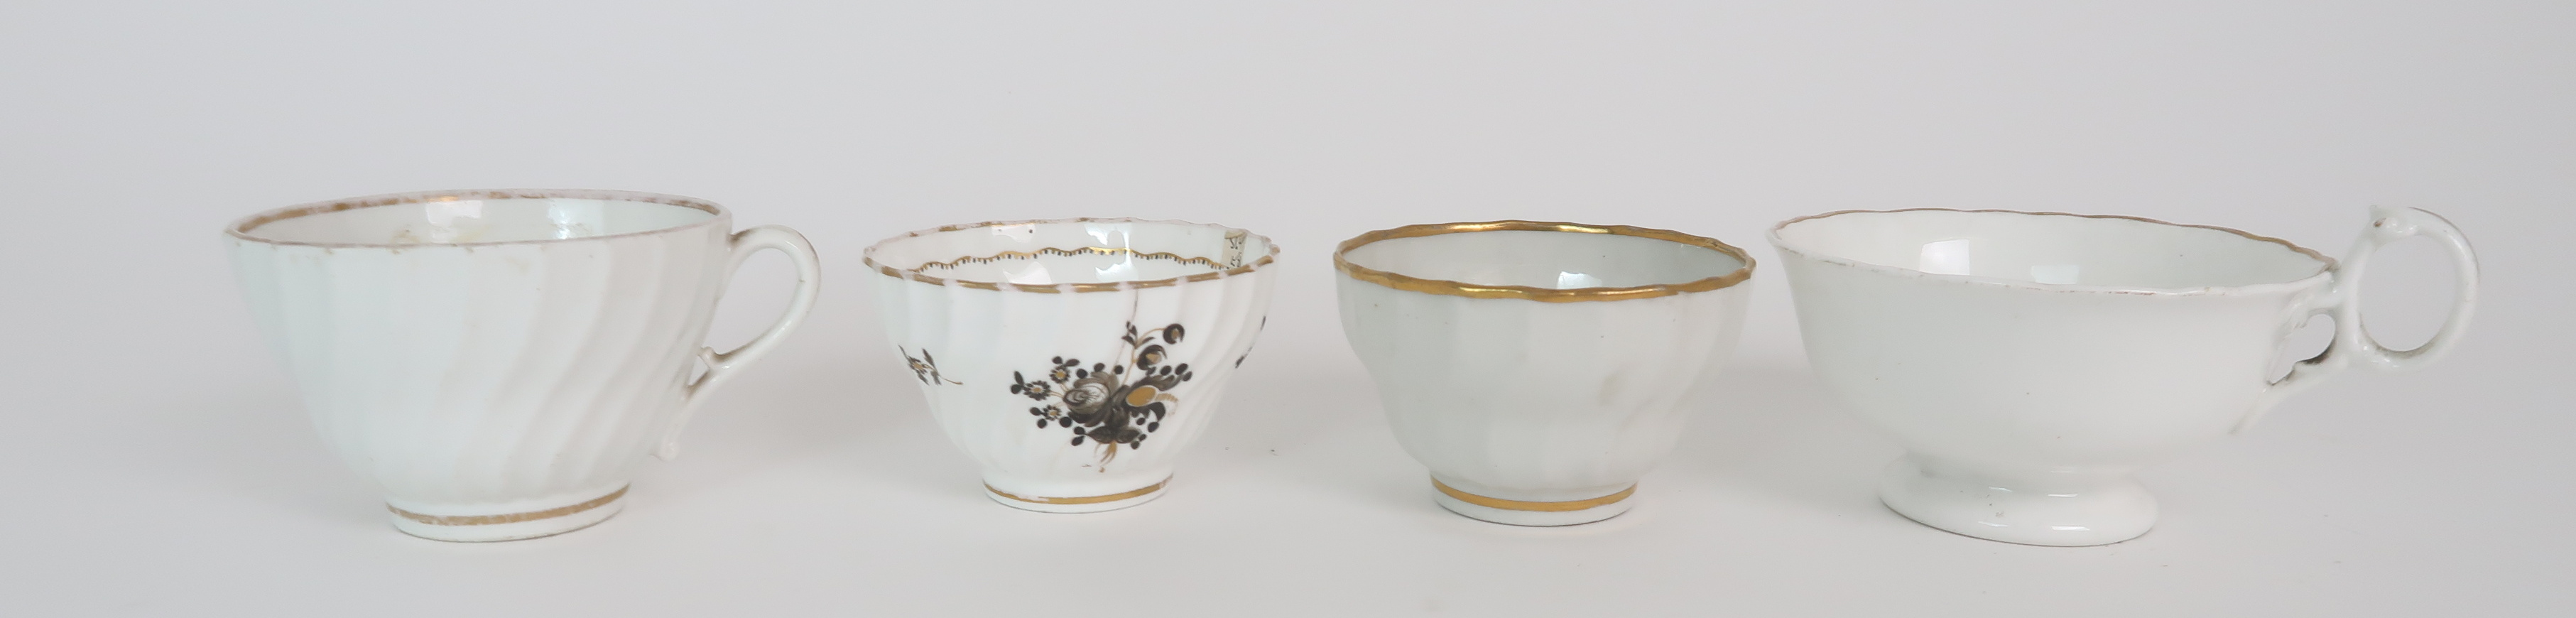 A COLLECTION OF 19TH CENTURY ENGLISH TEA AND COFFEE WARES the white ground with either grey and gilt - Image 21 of 22